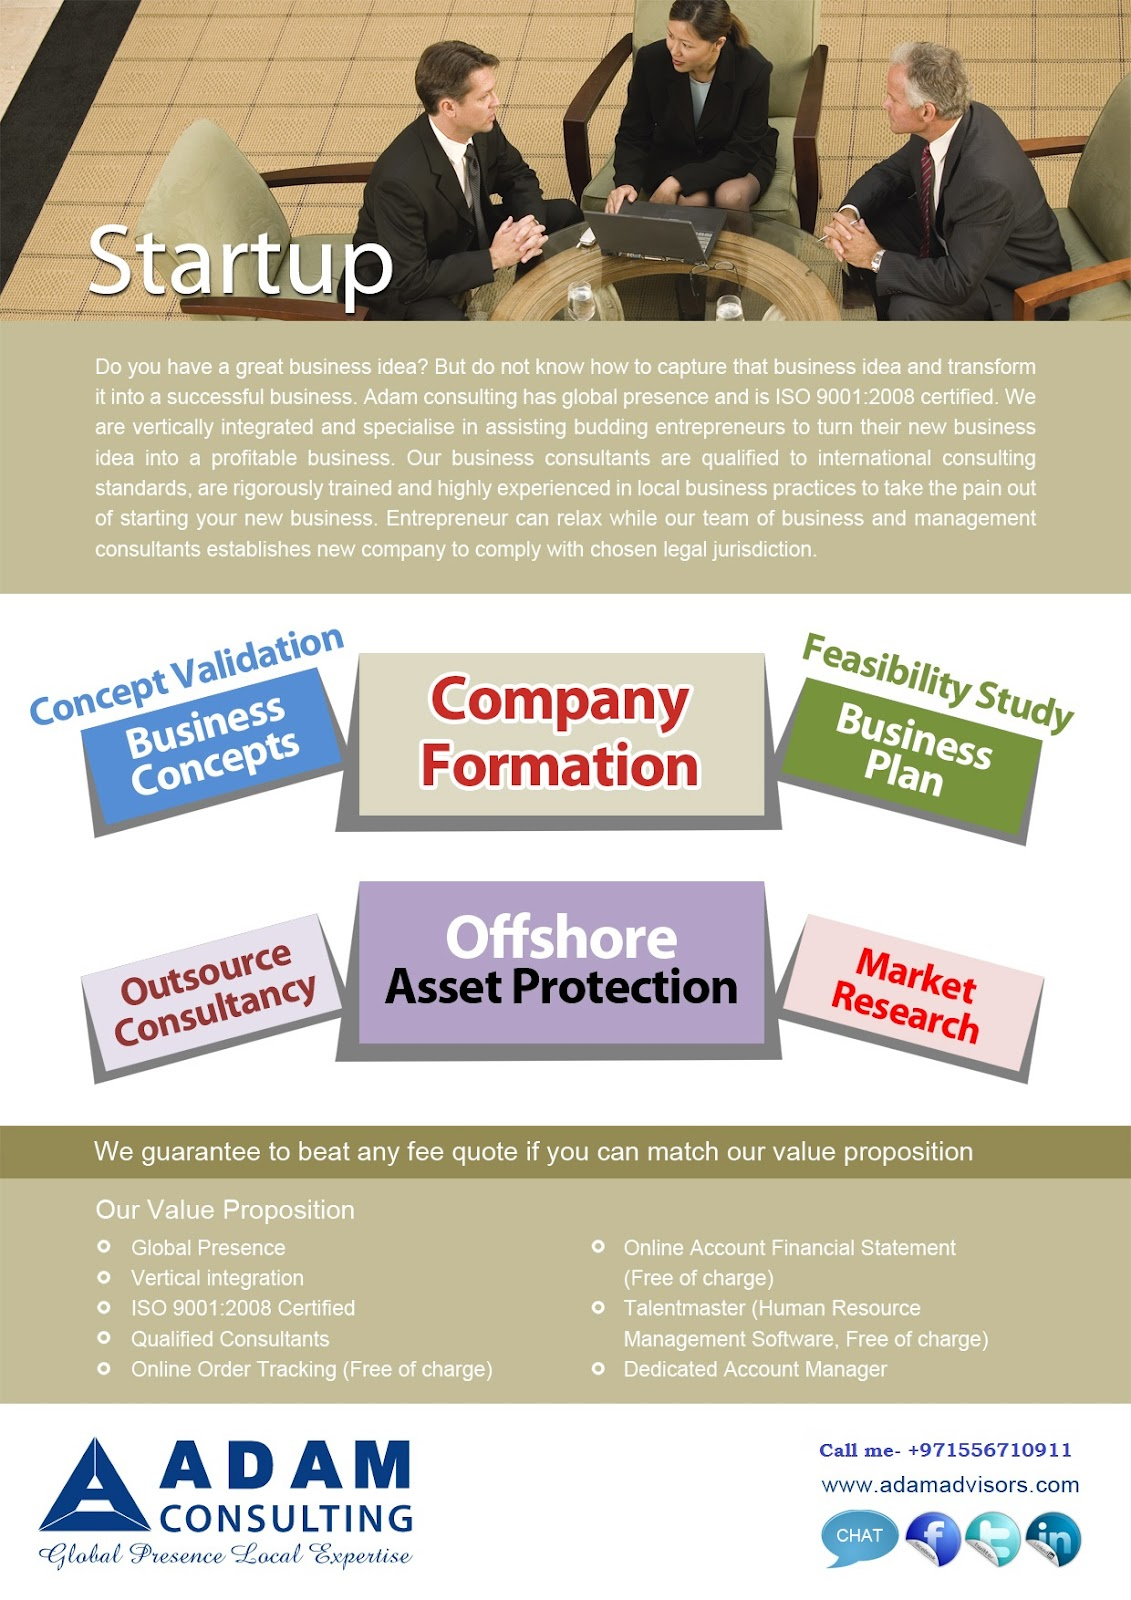 company formation Login to companies madesimple or create a new account to manage your existing companies or form new company formation contact us 0207 608 5500 office opens at.